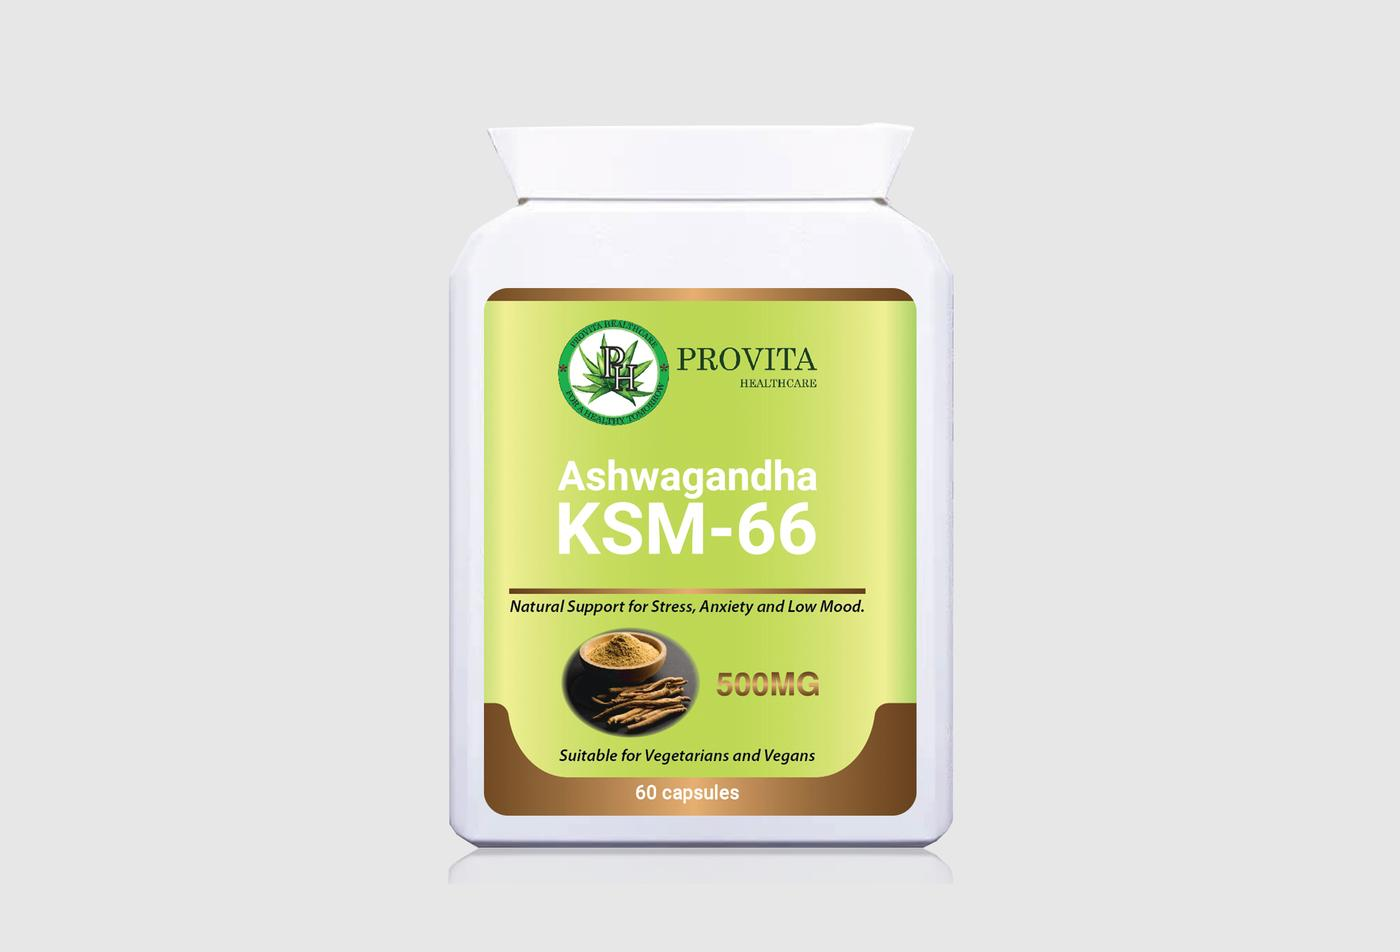 Ashwagandha KSM-66 500mg is a medicinal herb that may offer several health benefits such as improved blood sugar, reduce inflammation, mood, memory, stress and anxiety, as well as a boost in muscle strength and fertility.